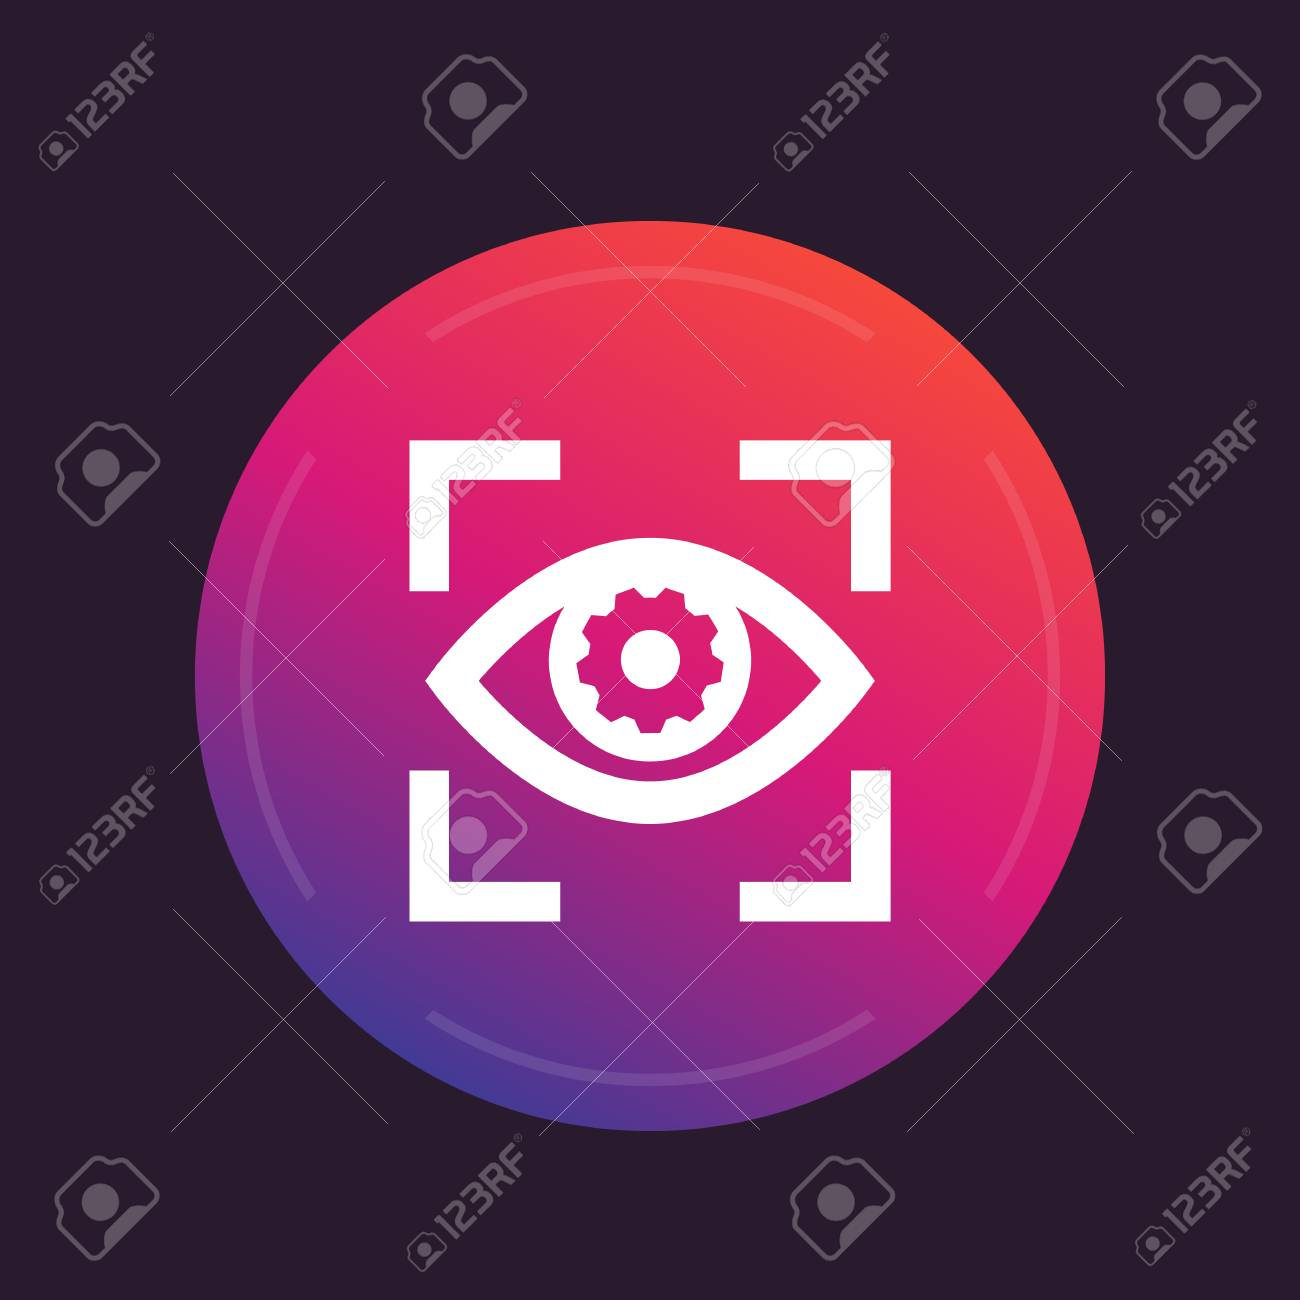 Eye with gear icon, vector pictogram - 90302877